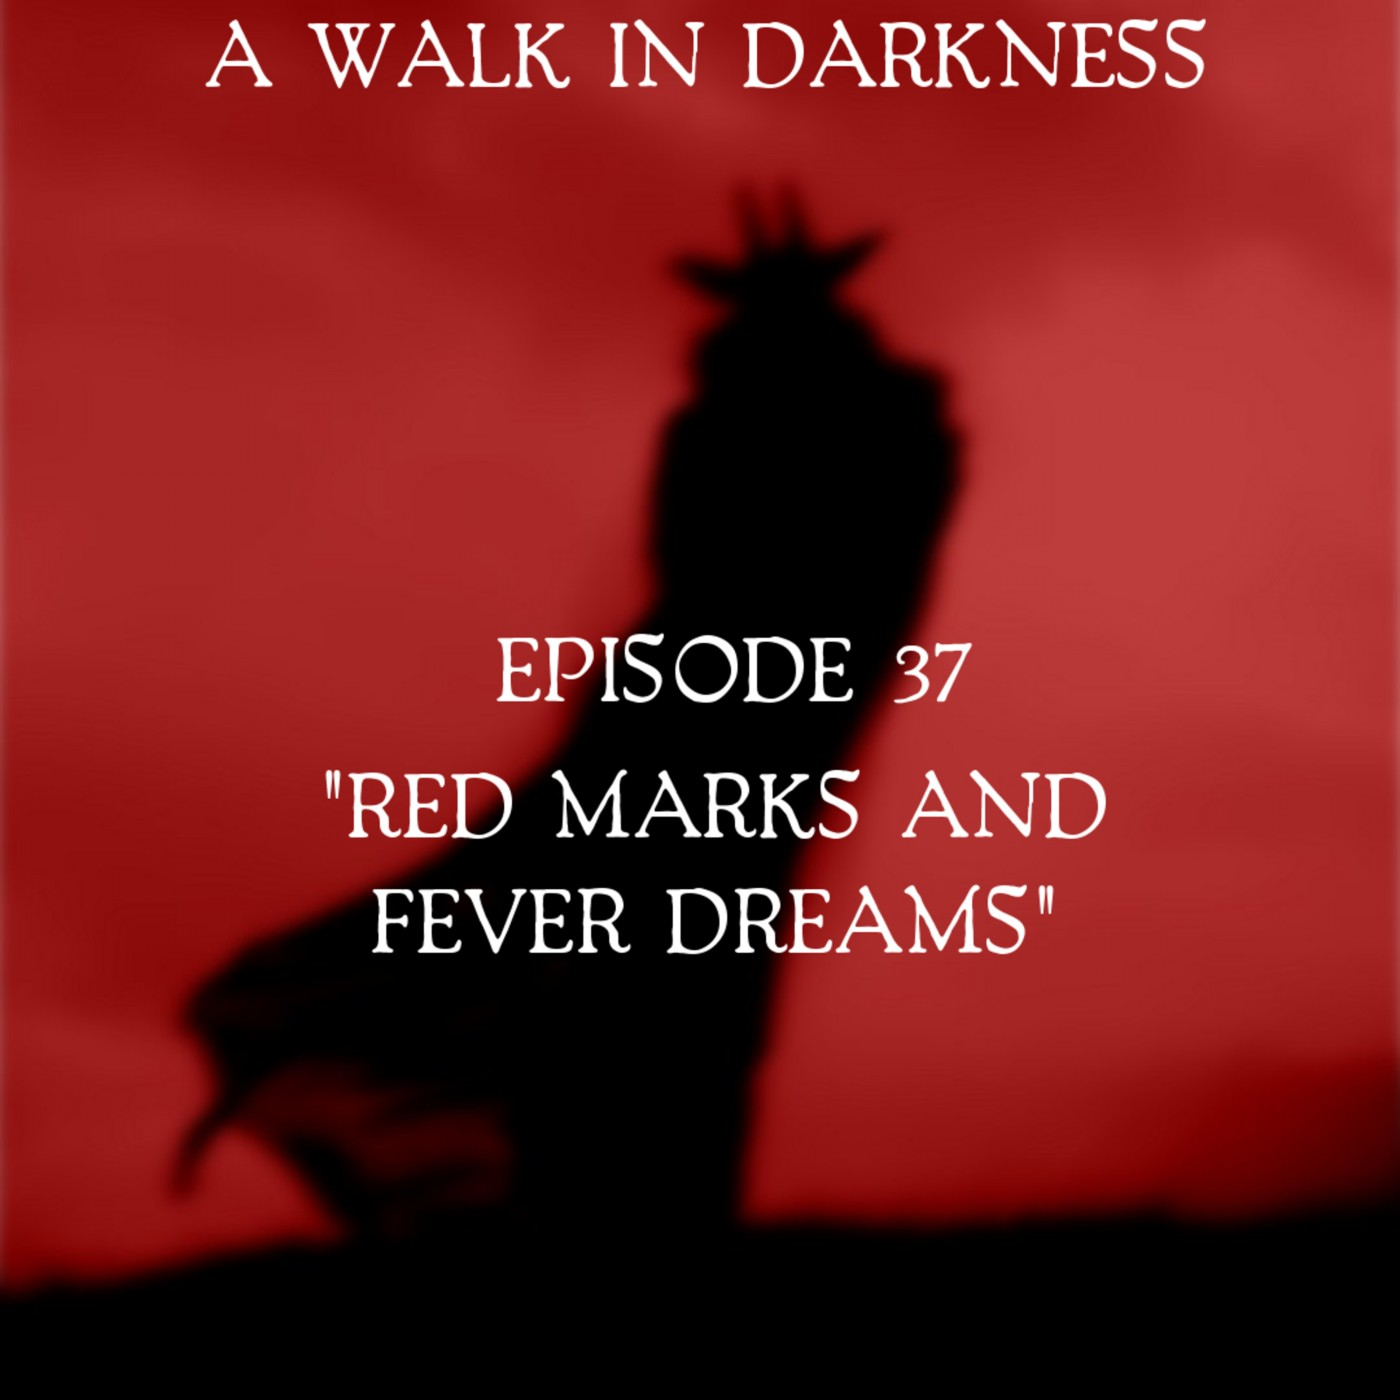 Red Marks and Fever Dreams (Episode 37)